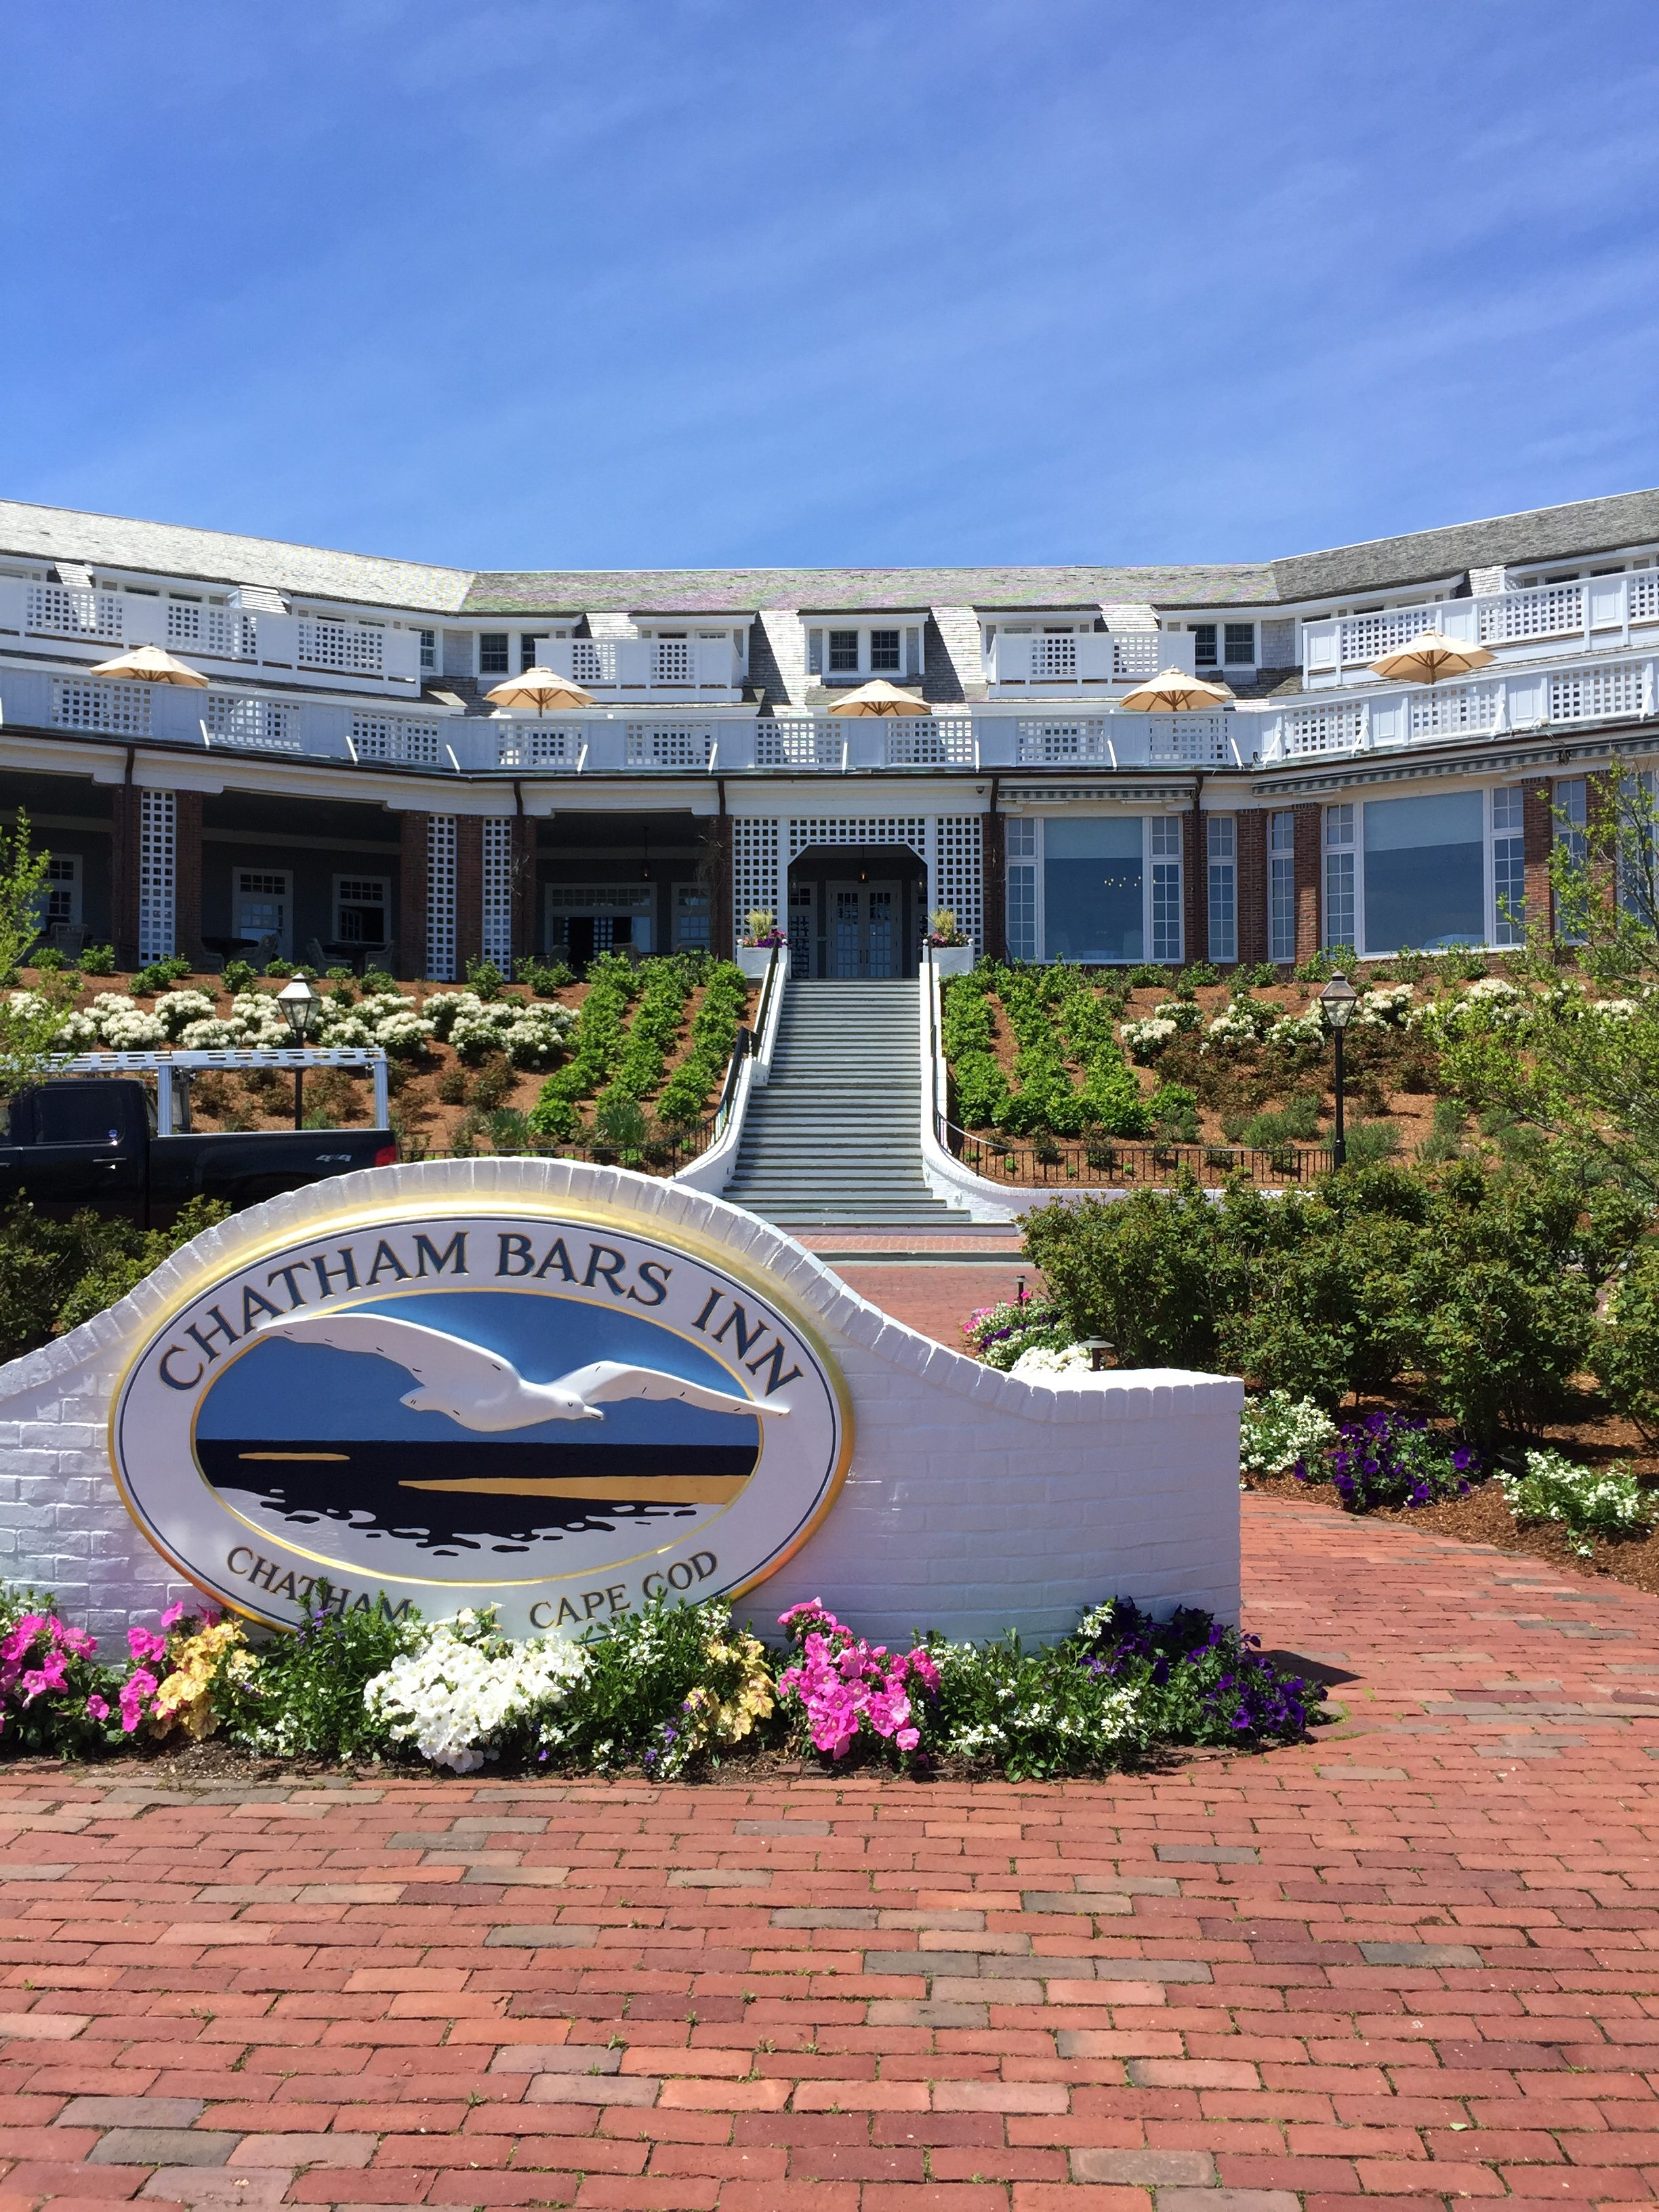 Chatham bars inn cape cod halt adventure and luxury for Call girls cape cod